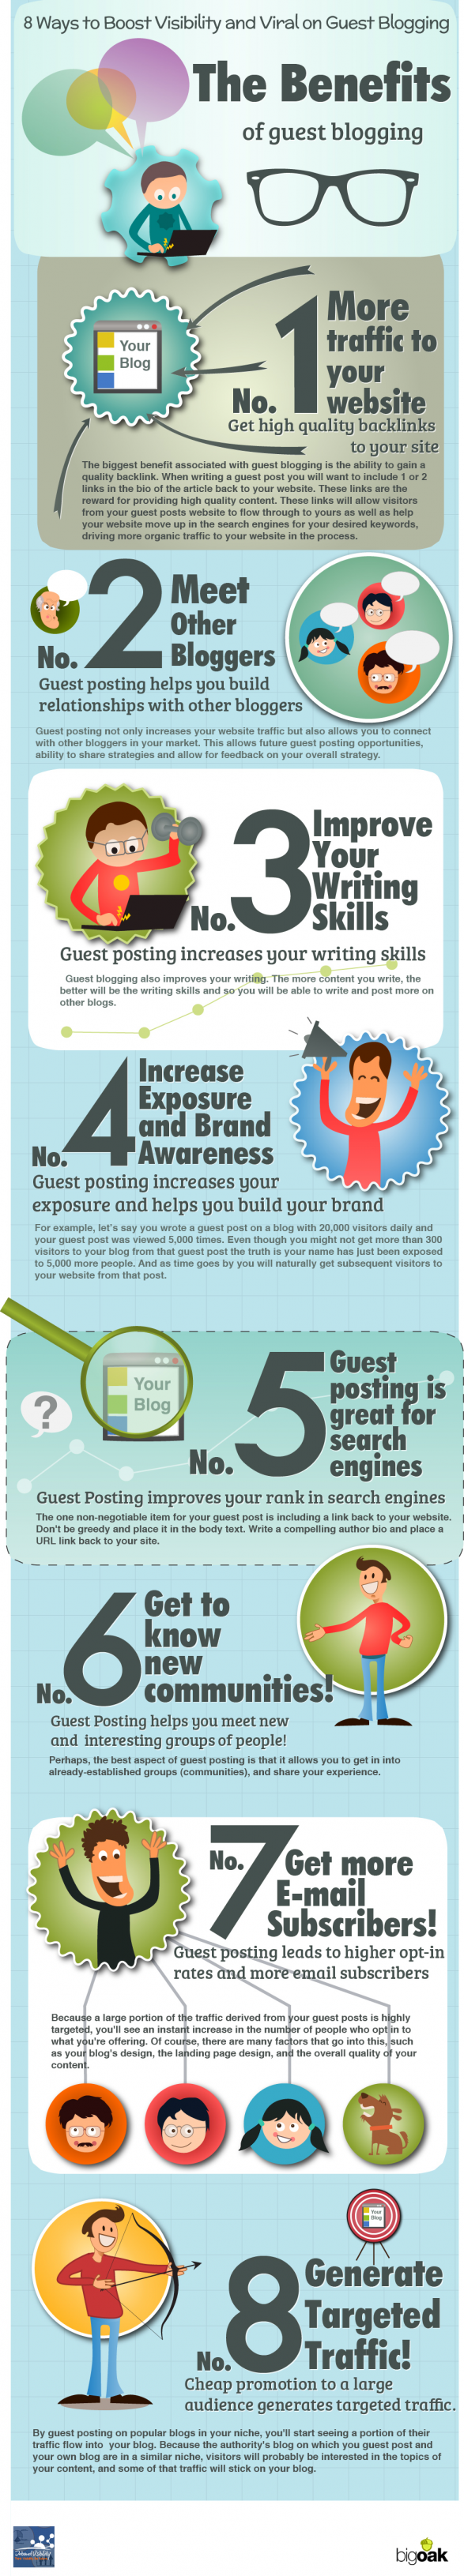 Guest Blogging: 8 Ways to Boost Brand Awareness & Discover New Trend